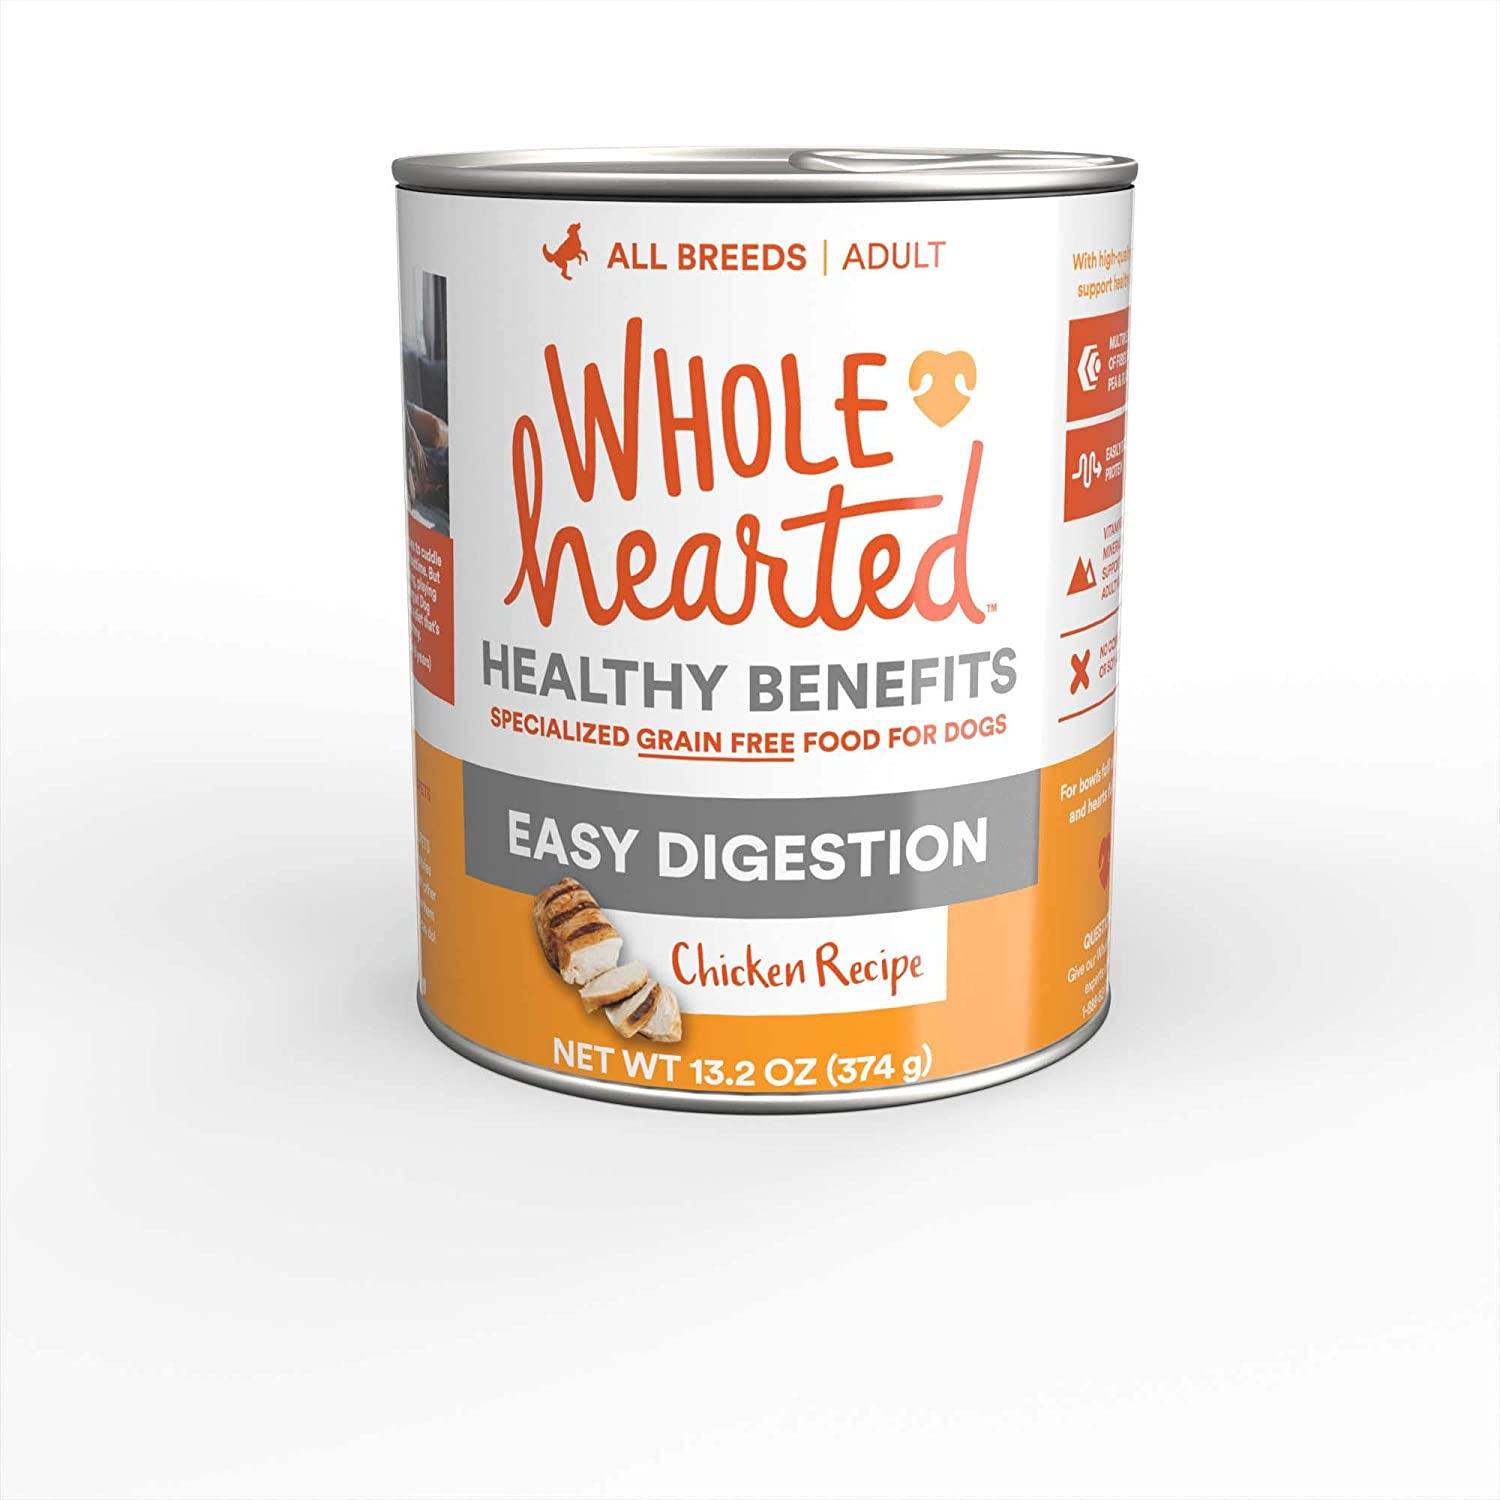 WholeHearted Easy Digestion Chicken Recipe Wet Dog Food